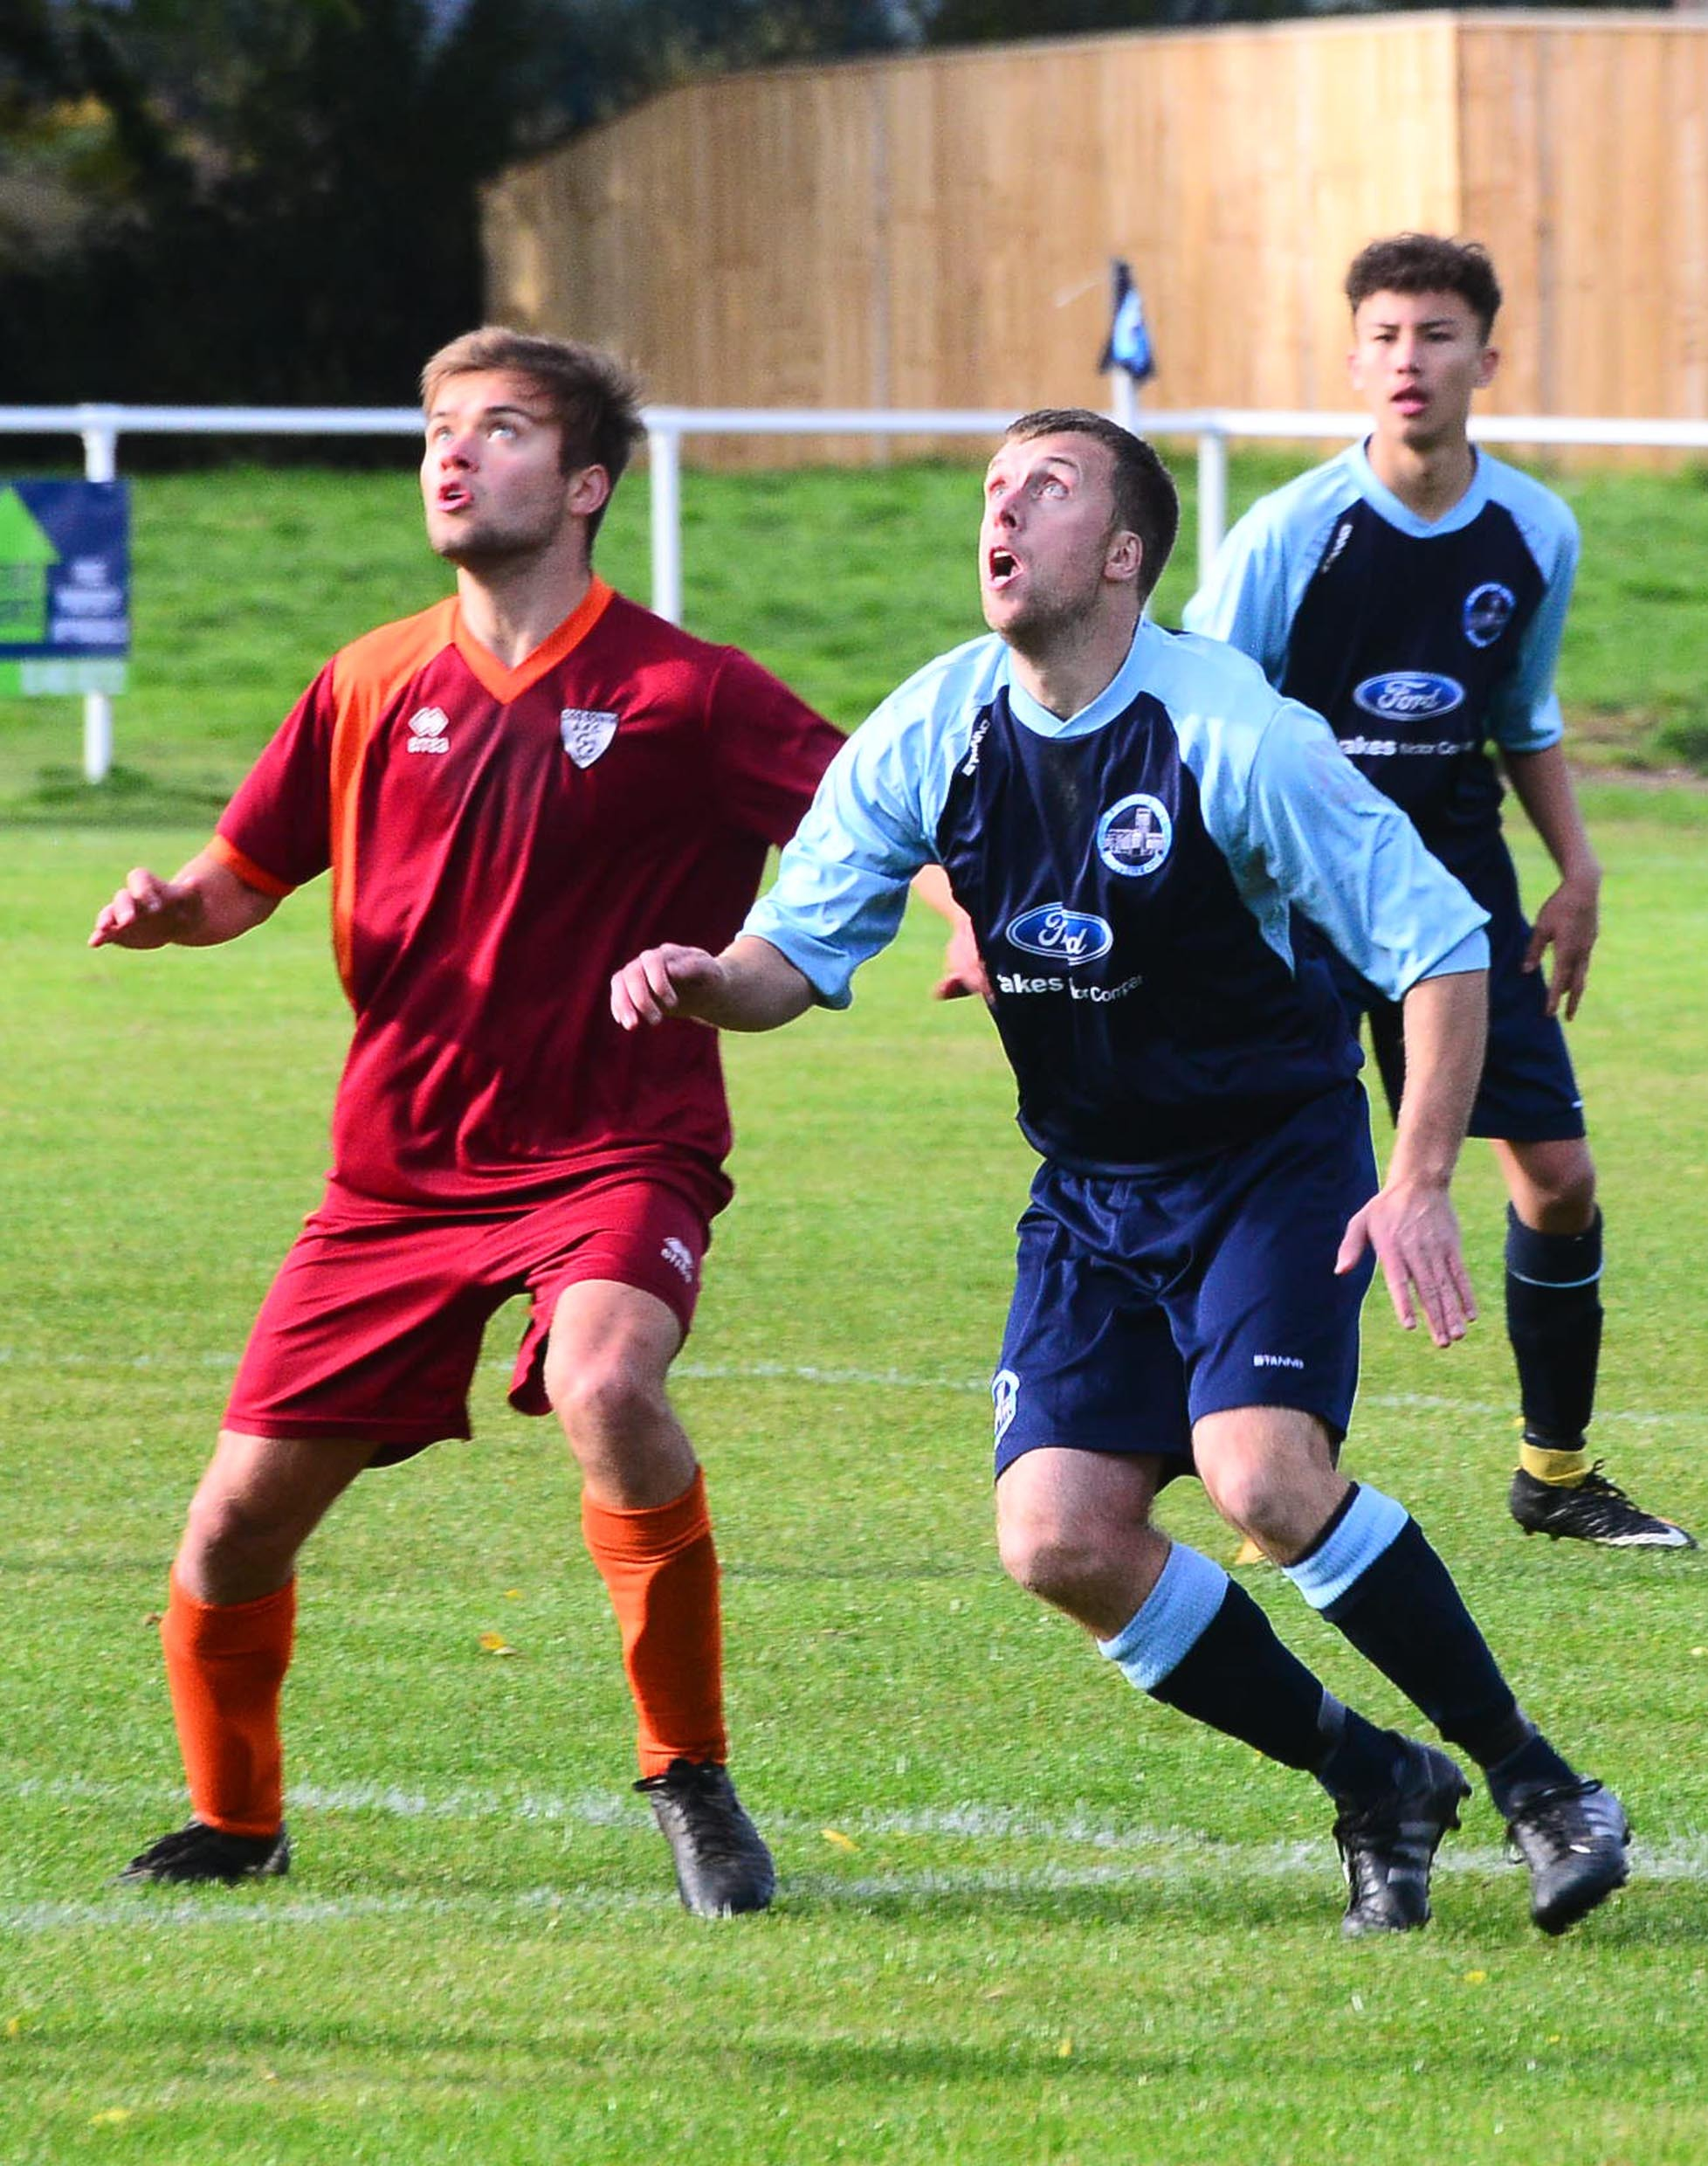 DEFEATED: Missed chances proved costly for Ilminster Town at Chilcompton